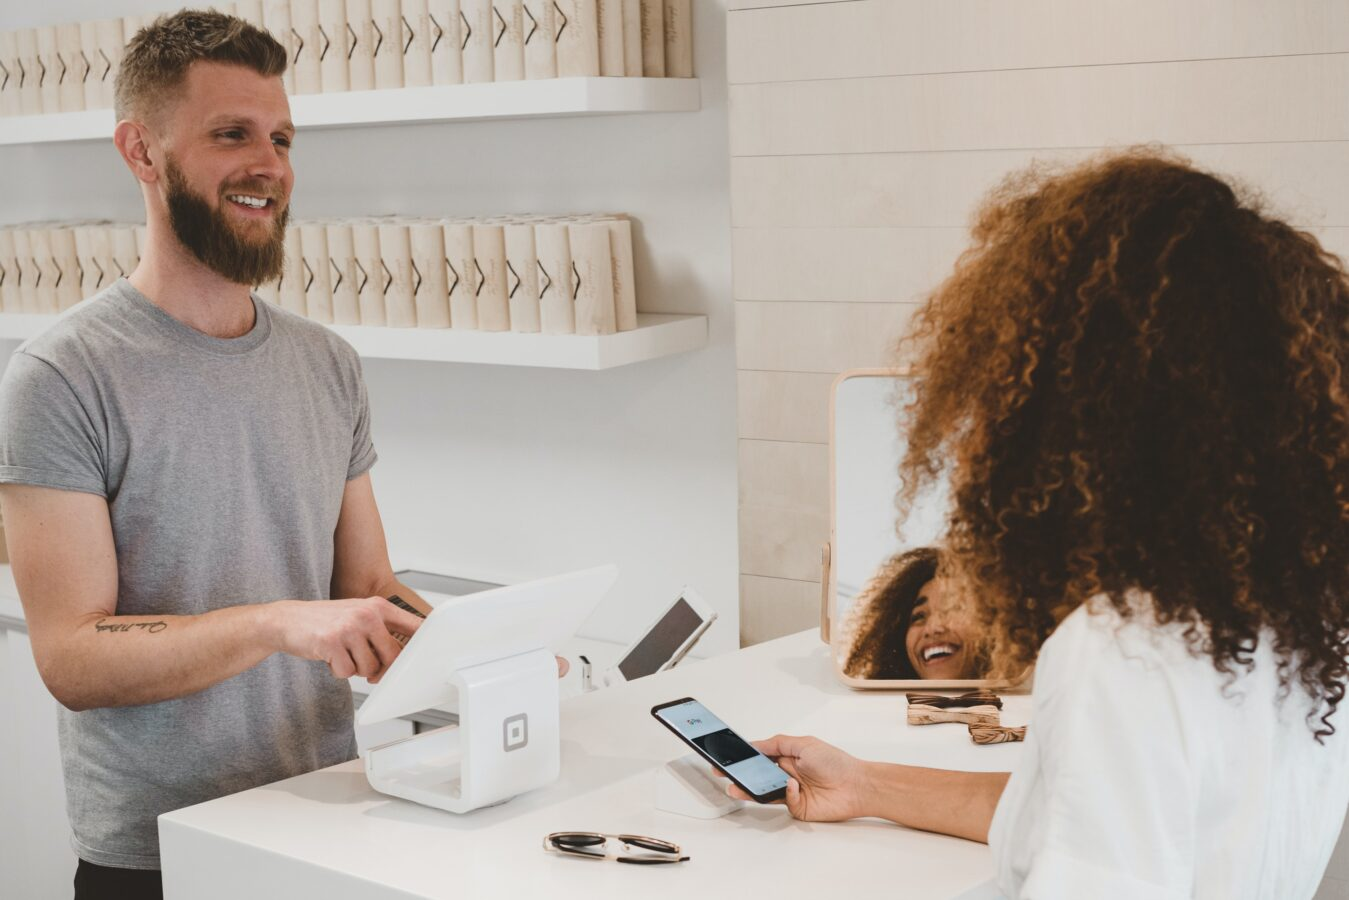 A cashier conducts a survey in the store to close the customer feedback loop.